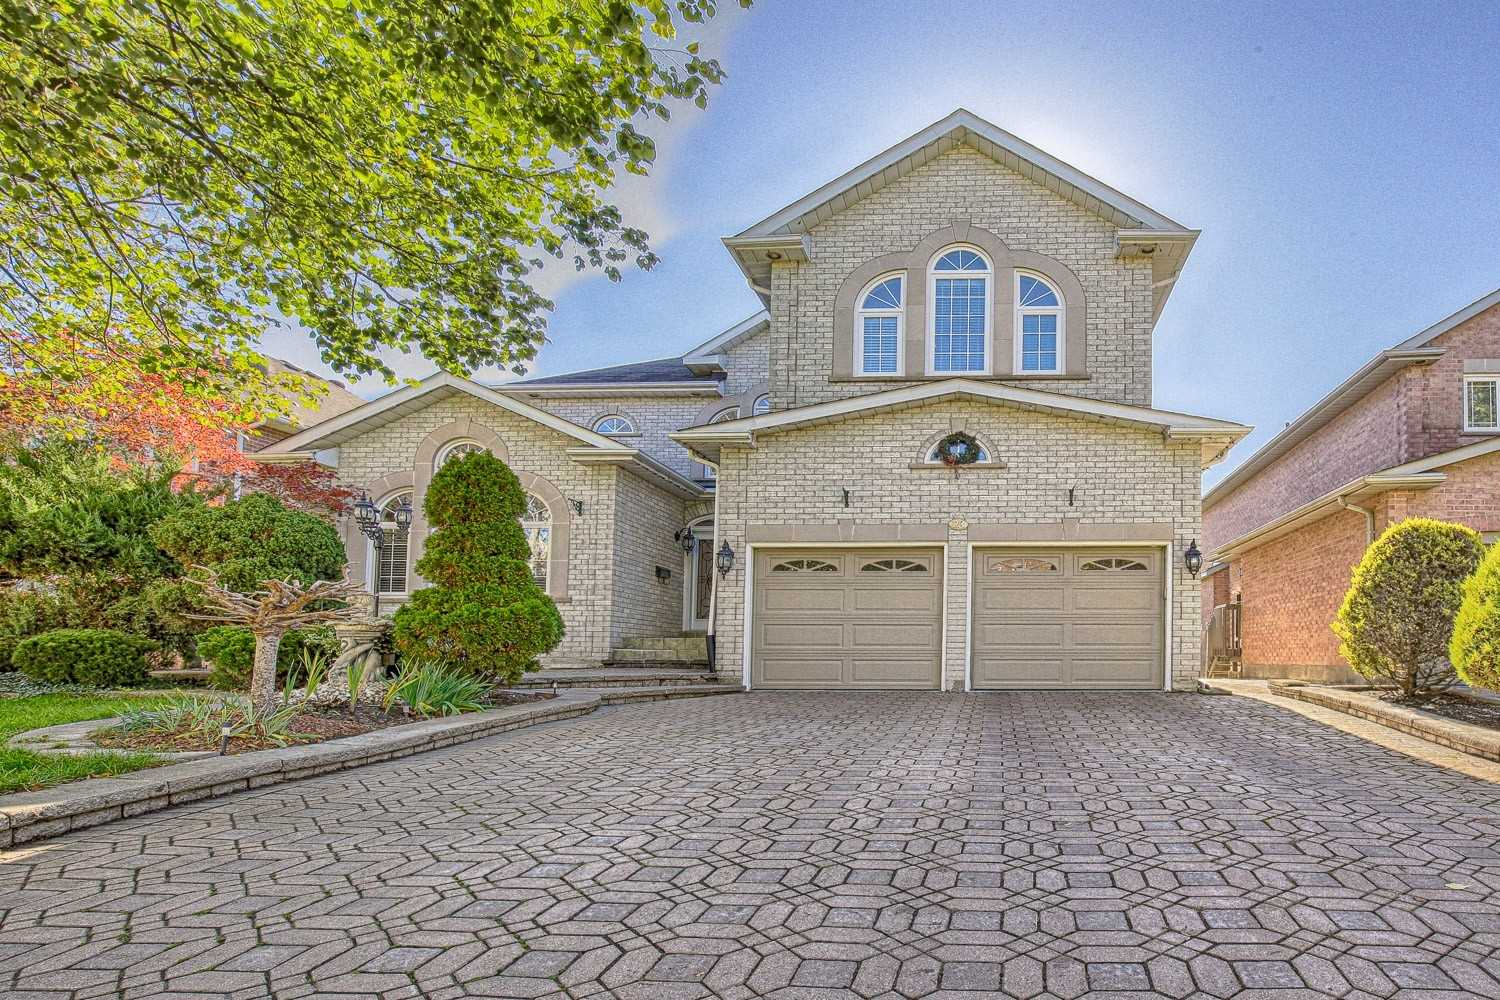 23 Woodlawn Rd, Markham, Ontario L3P 7G7, 4 Bedrooms Bedrooms, ,4 BathroomsBathrooms,Detached,For Sale,Woodlawn,N5415538